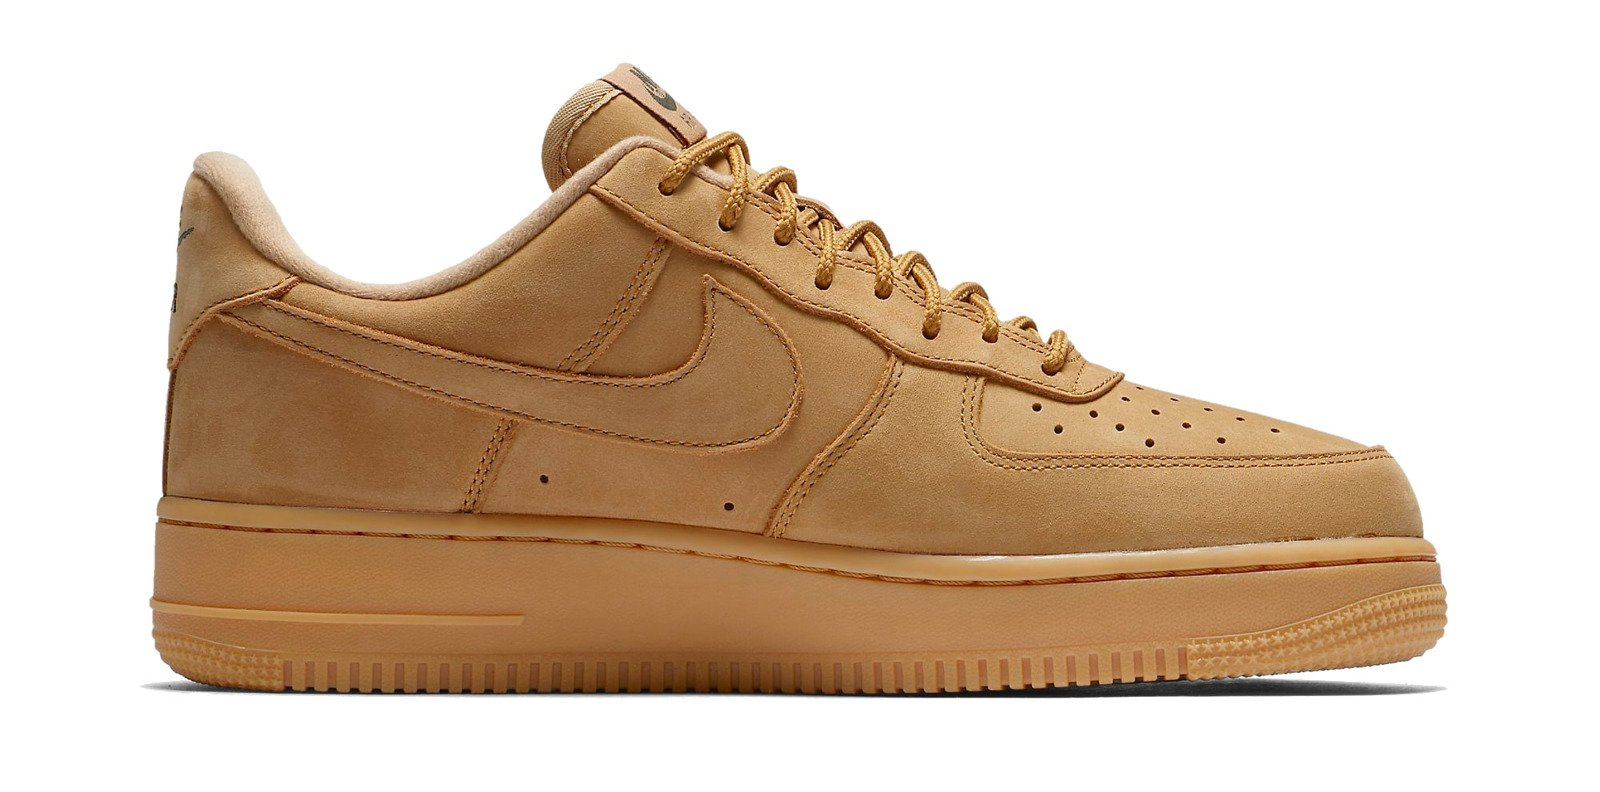 finest selection 9f071 f3ed6 Nike Air Force 1 Low '07 WB Wheat - AA4061-200